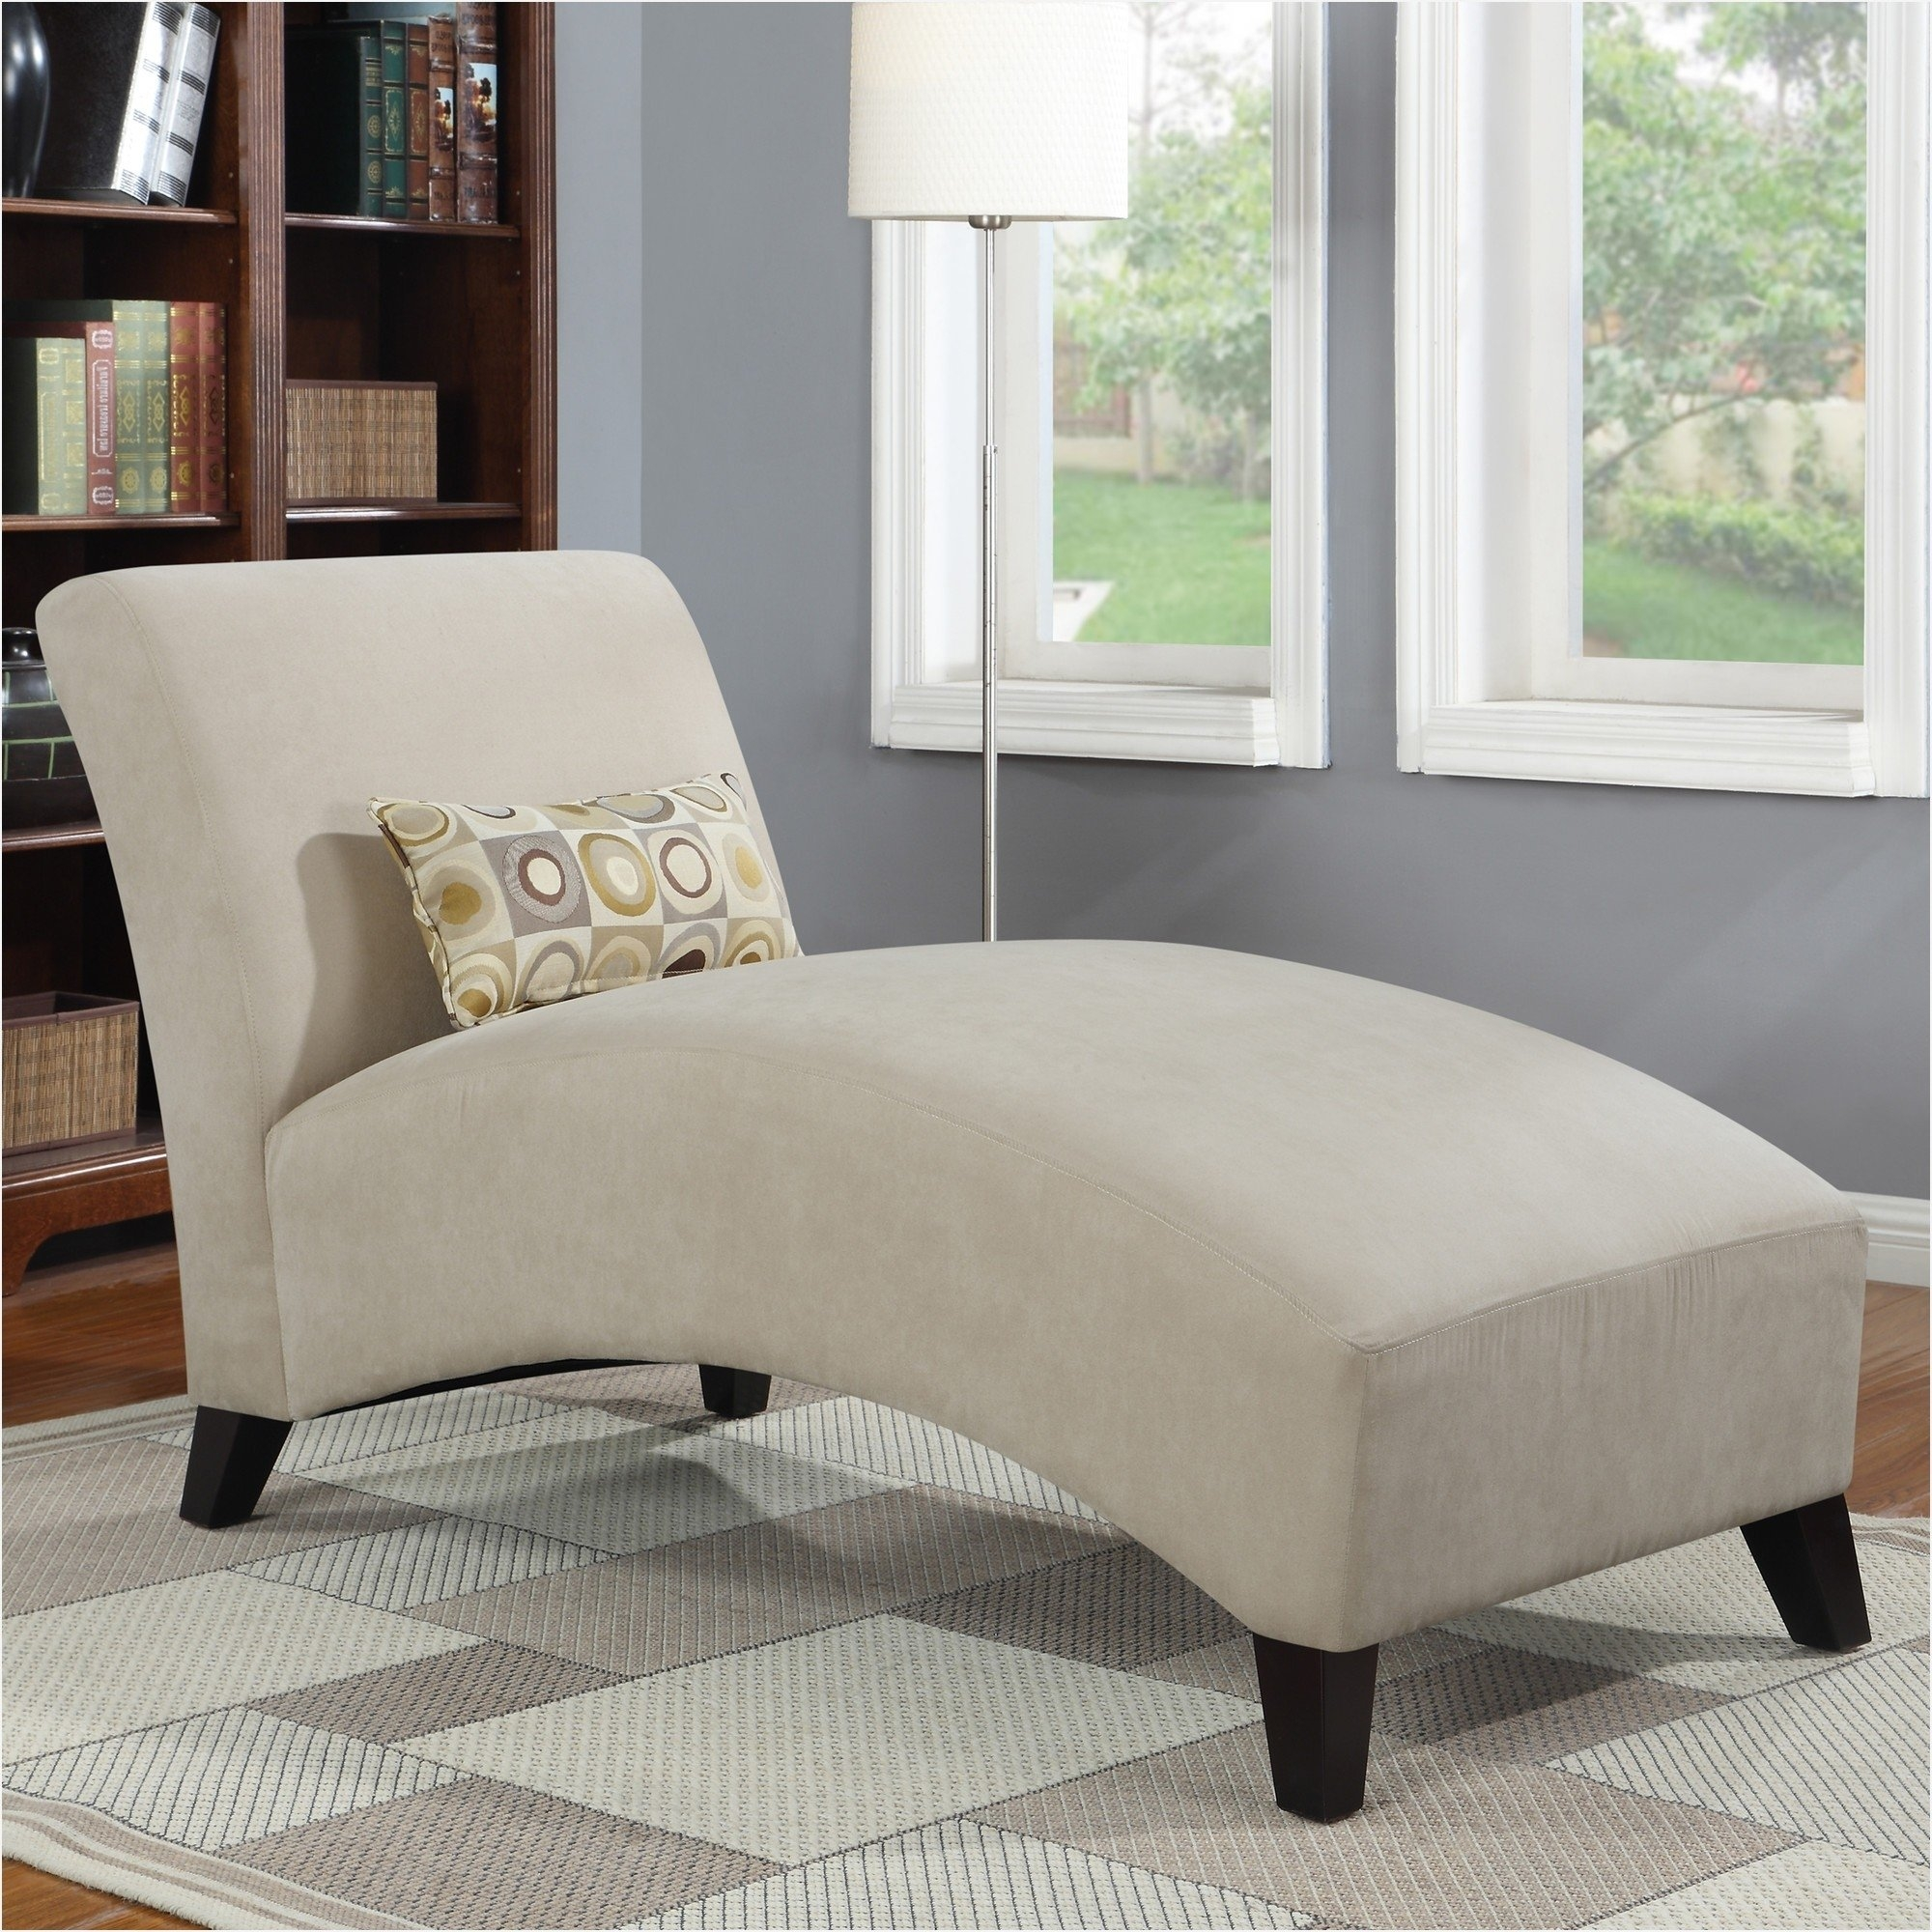 chaise chair for bedroom sofa rocking lounge chairs visual hunt purchase modern